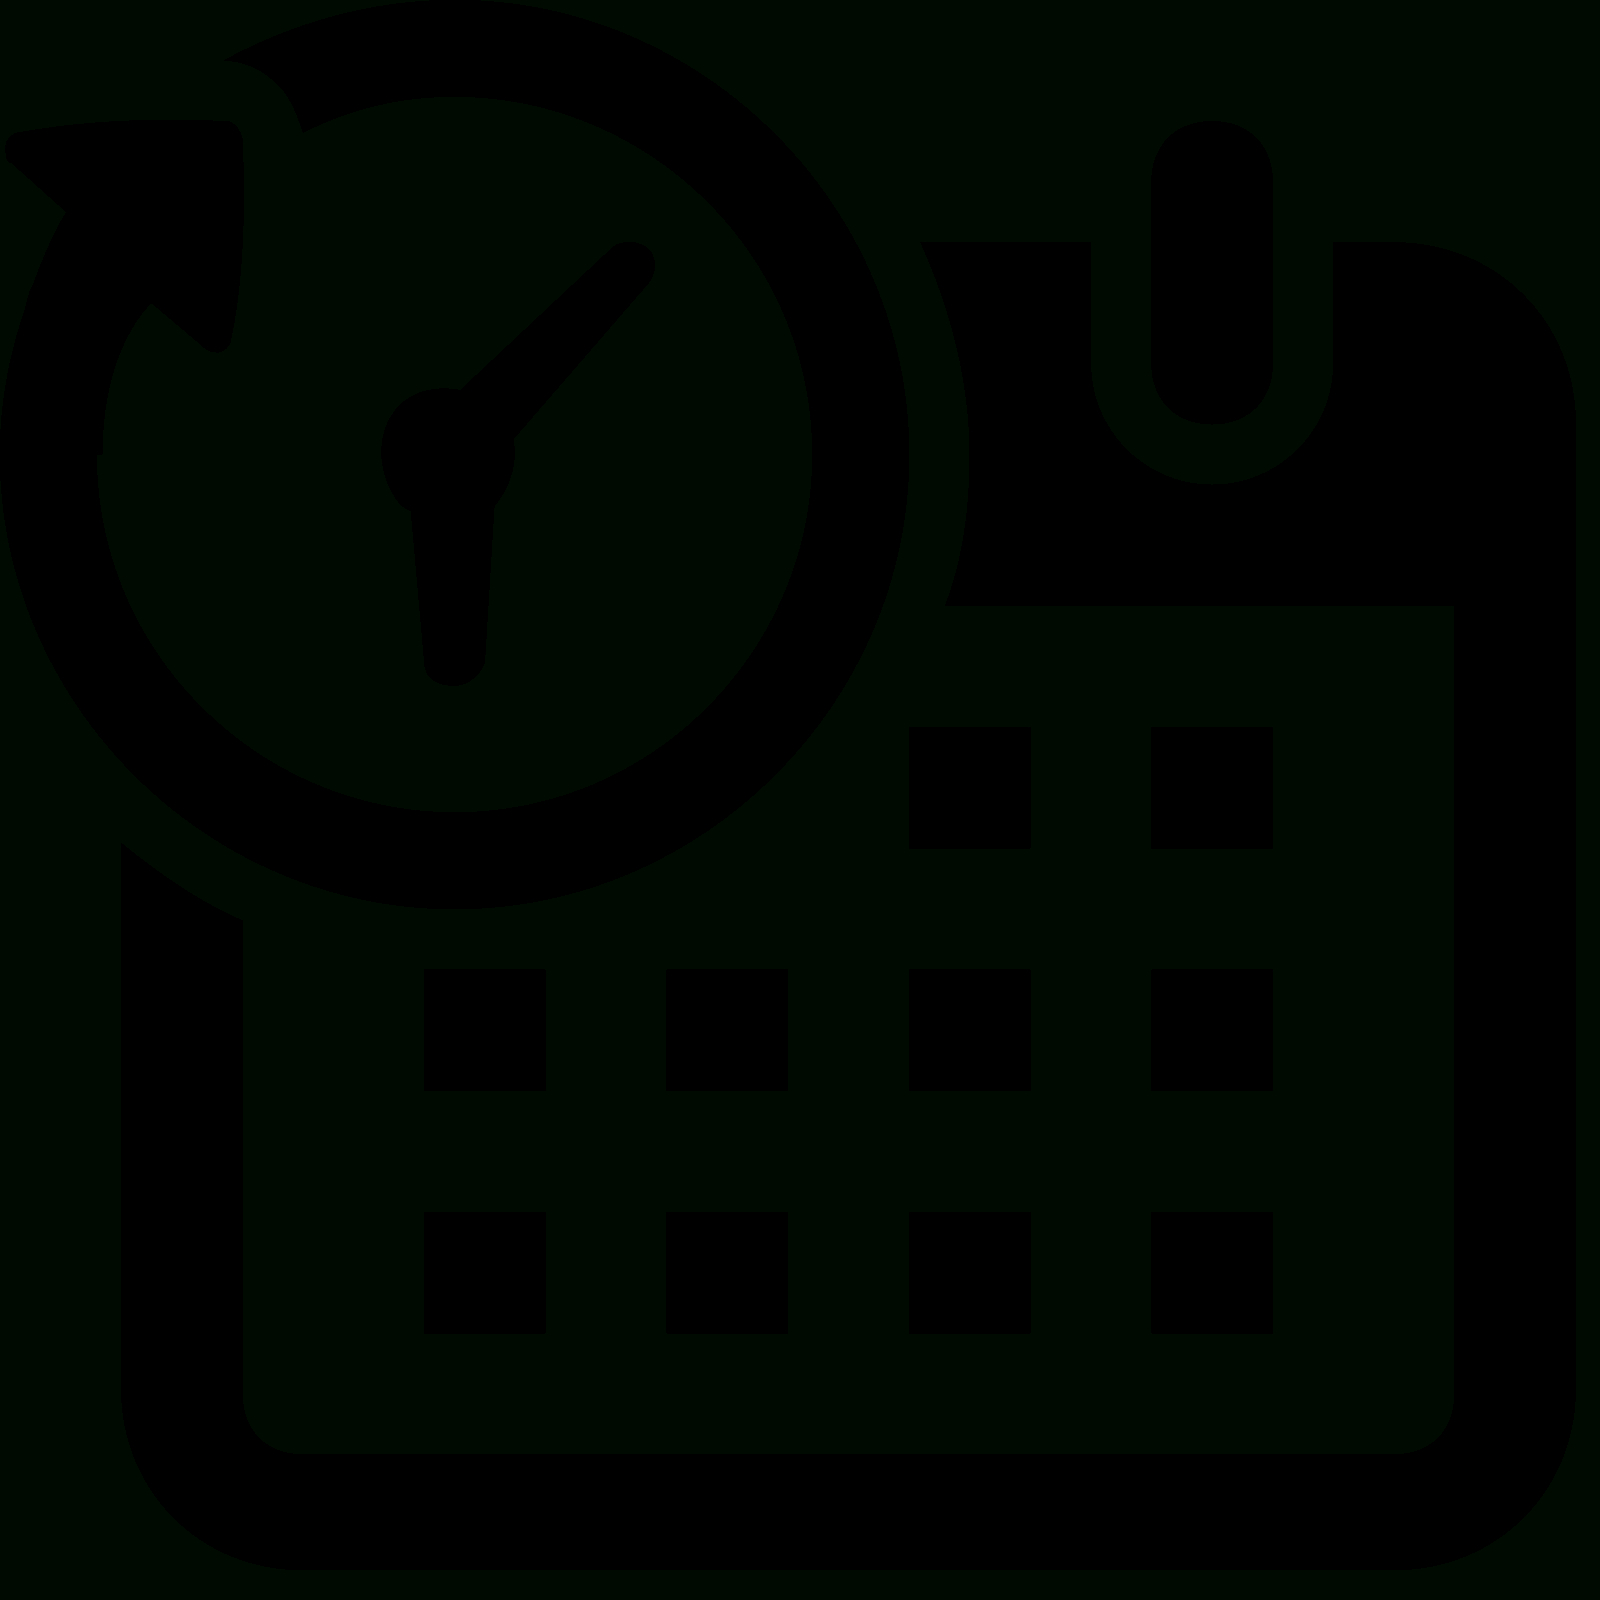 Clipart Clock Deadline, Clipart Clock Deadline Transparent pertaining to Deadline Icon Png